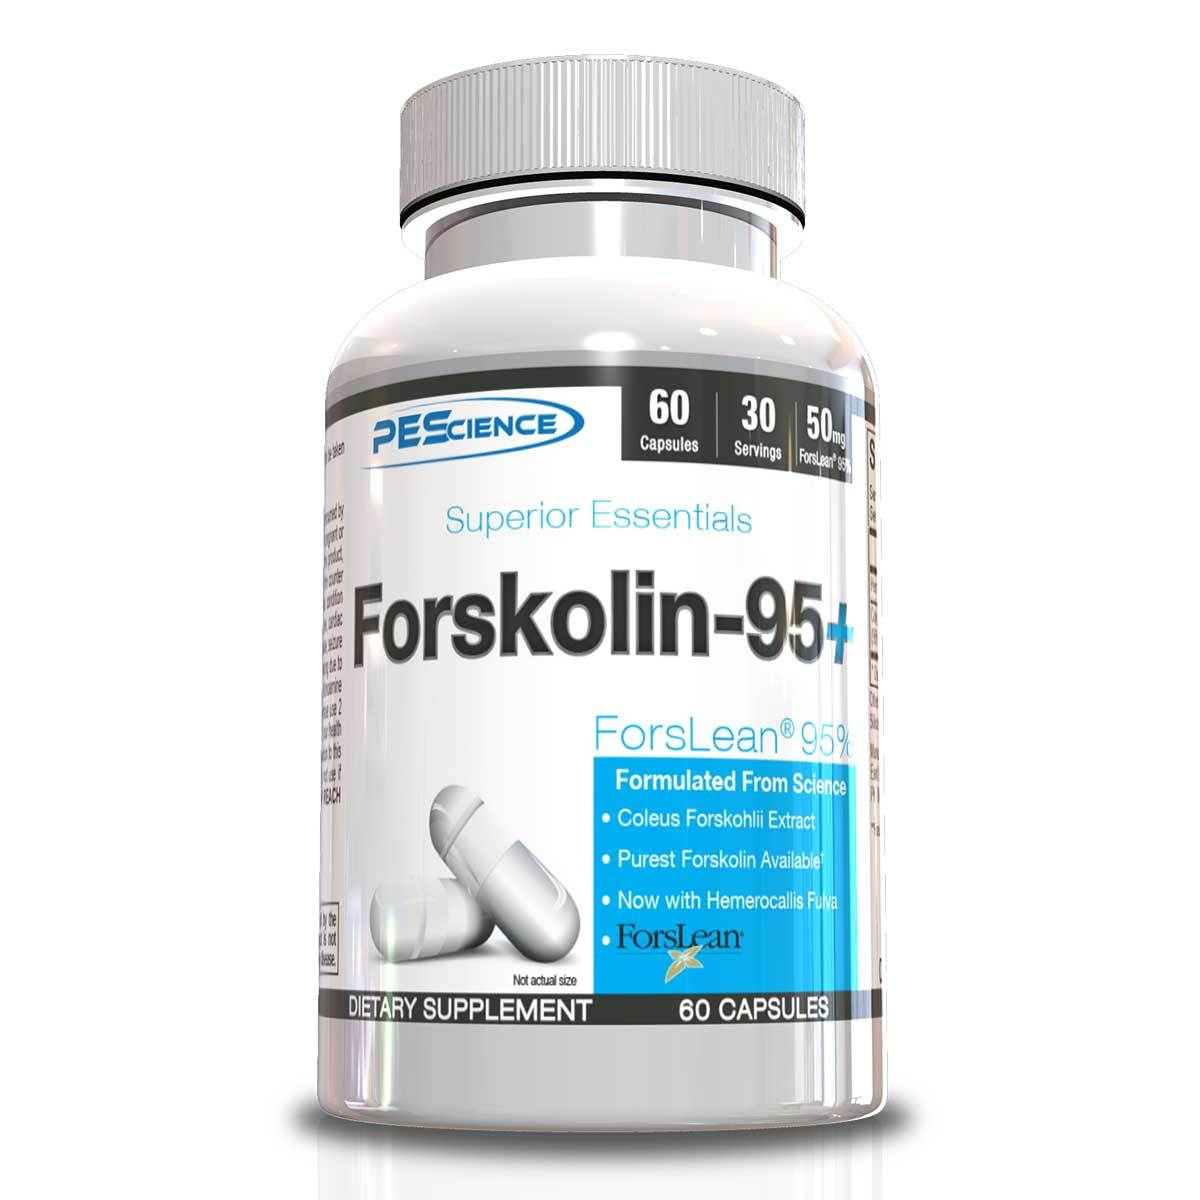 PEScience Forskolin-95+ 60 Caps Antioxidants / CoQ-10 PEScience  (1059196698667)